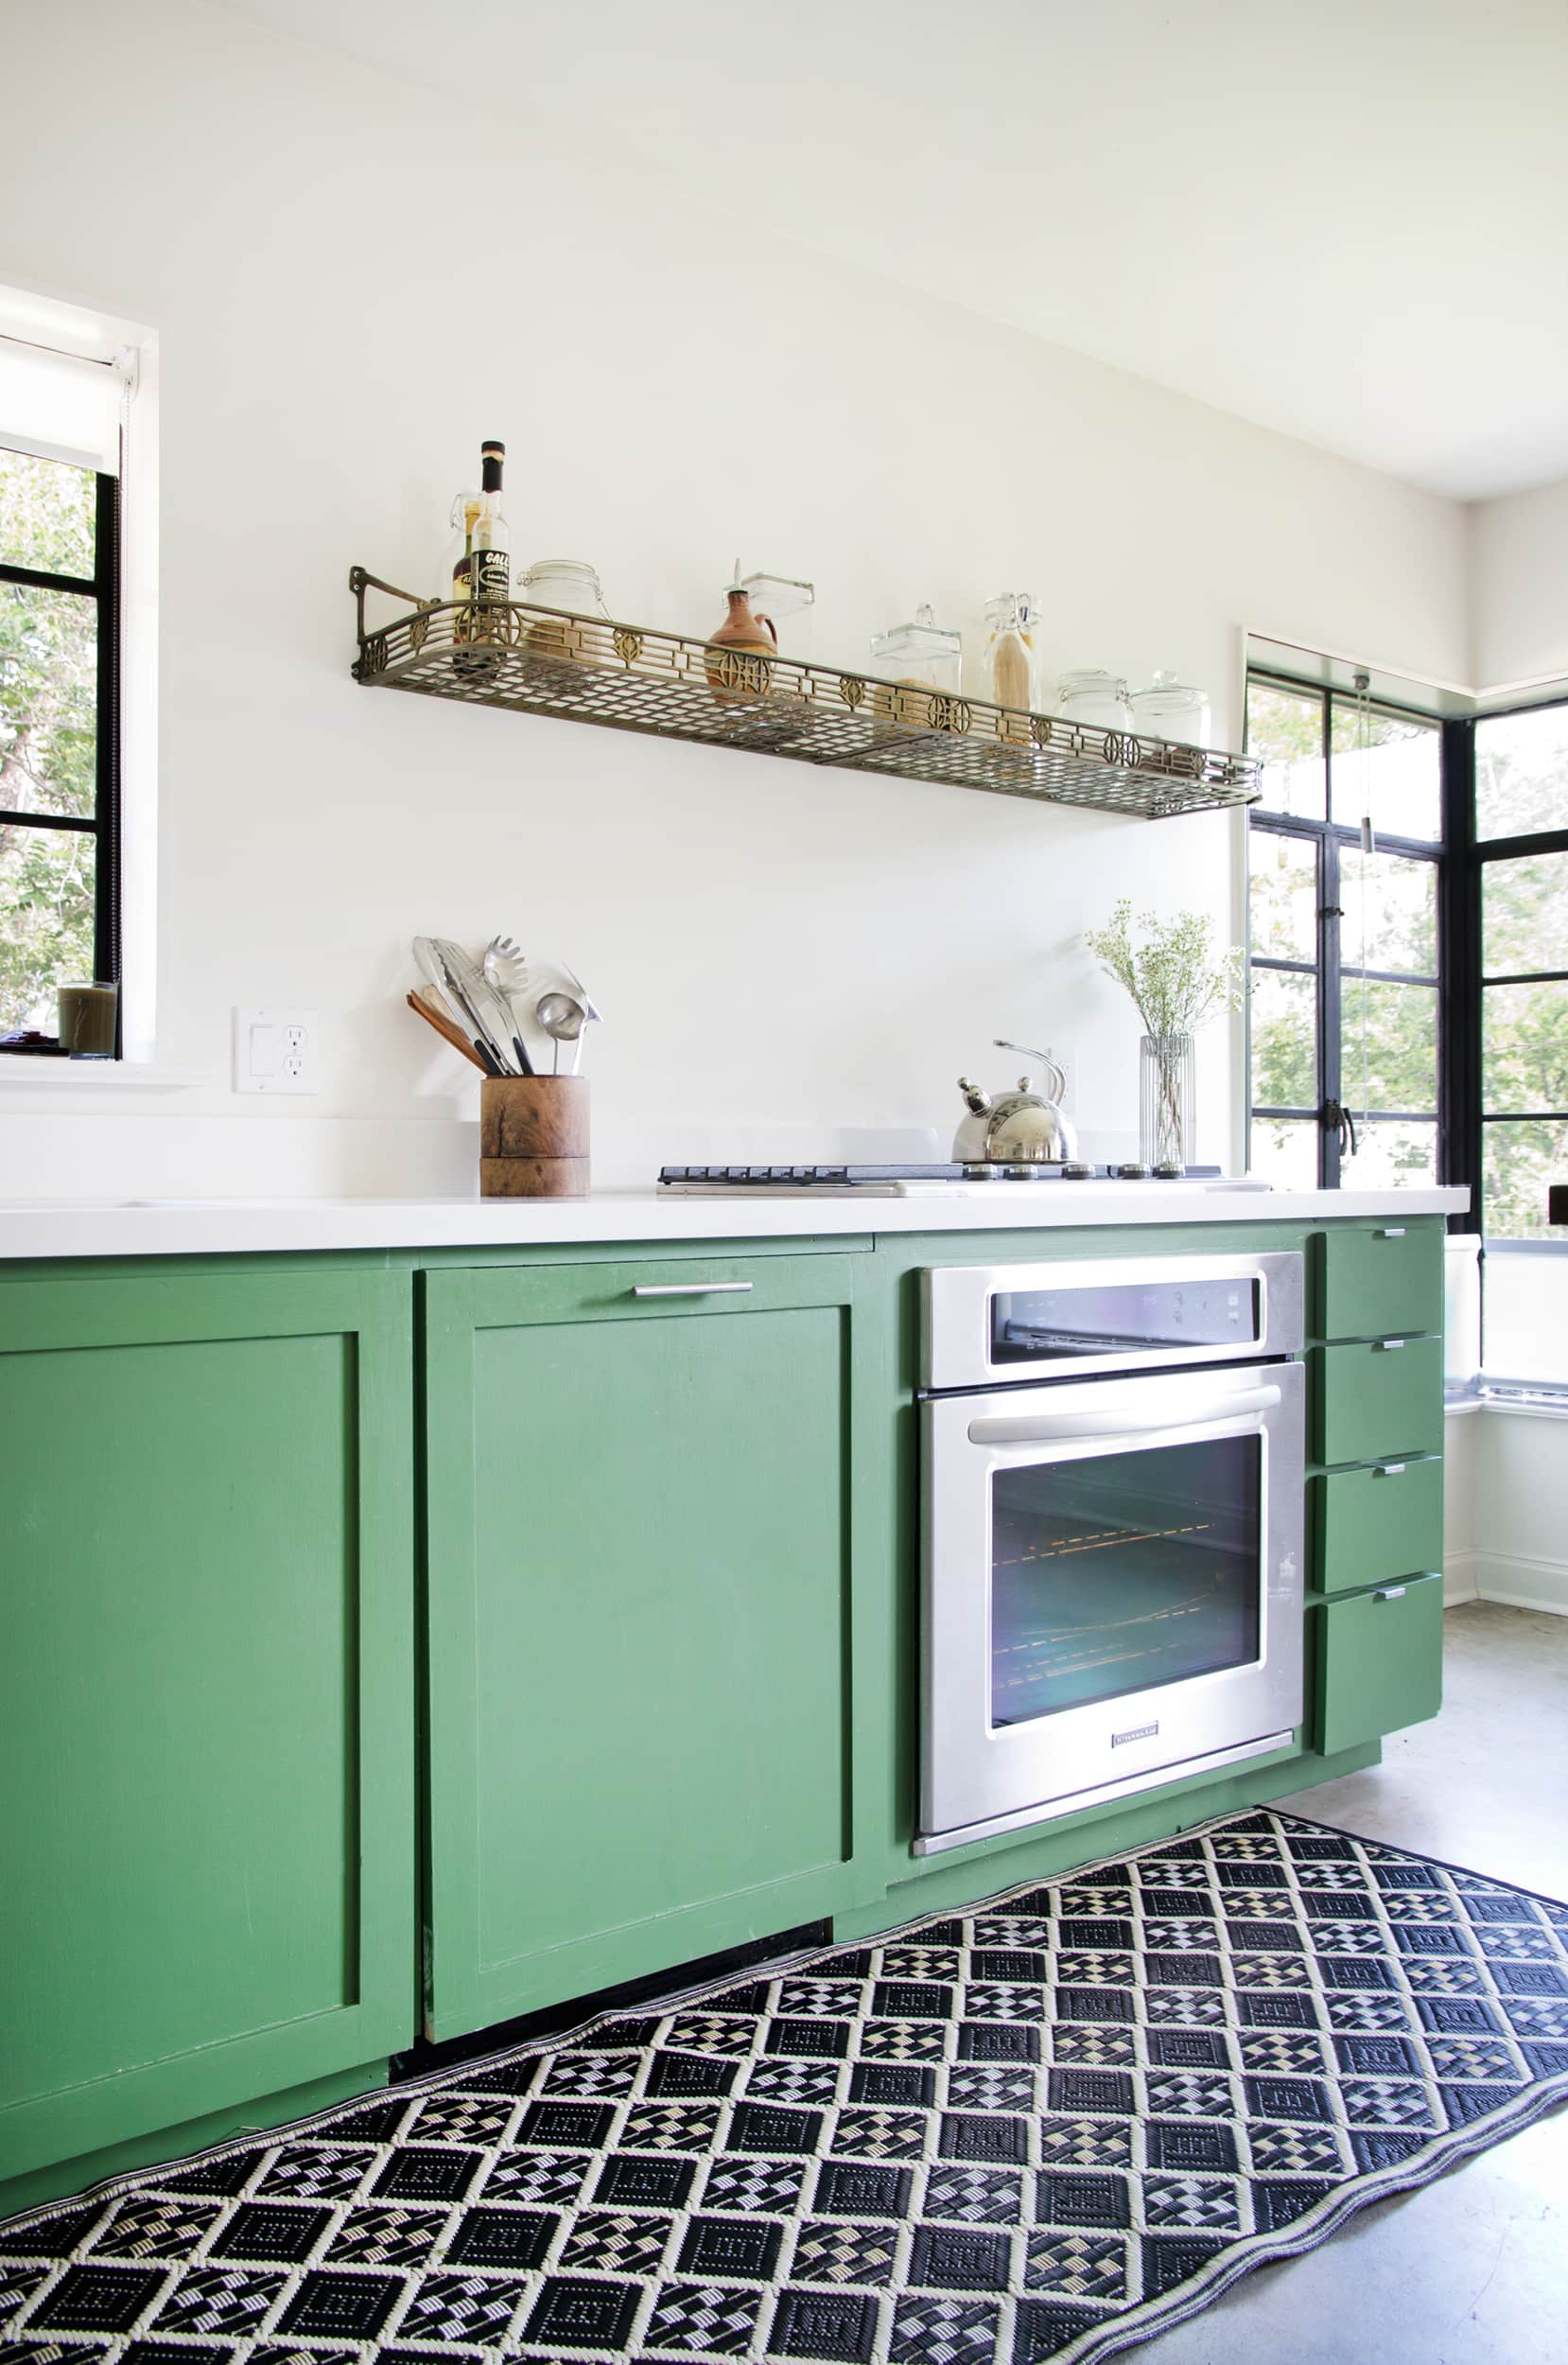 20 Paint Colors We Love in the Kitchen: gallery image 13